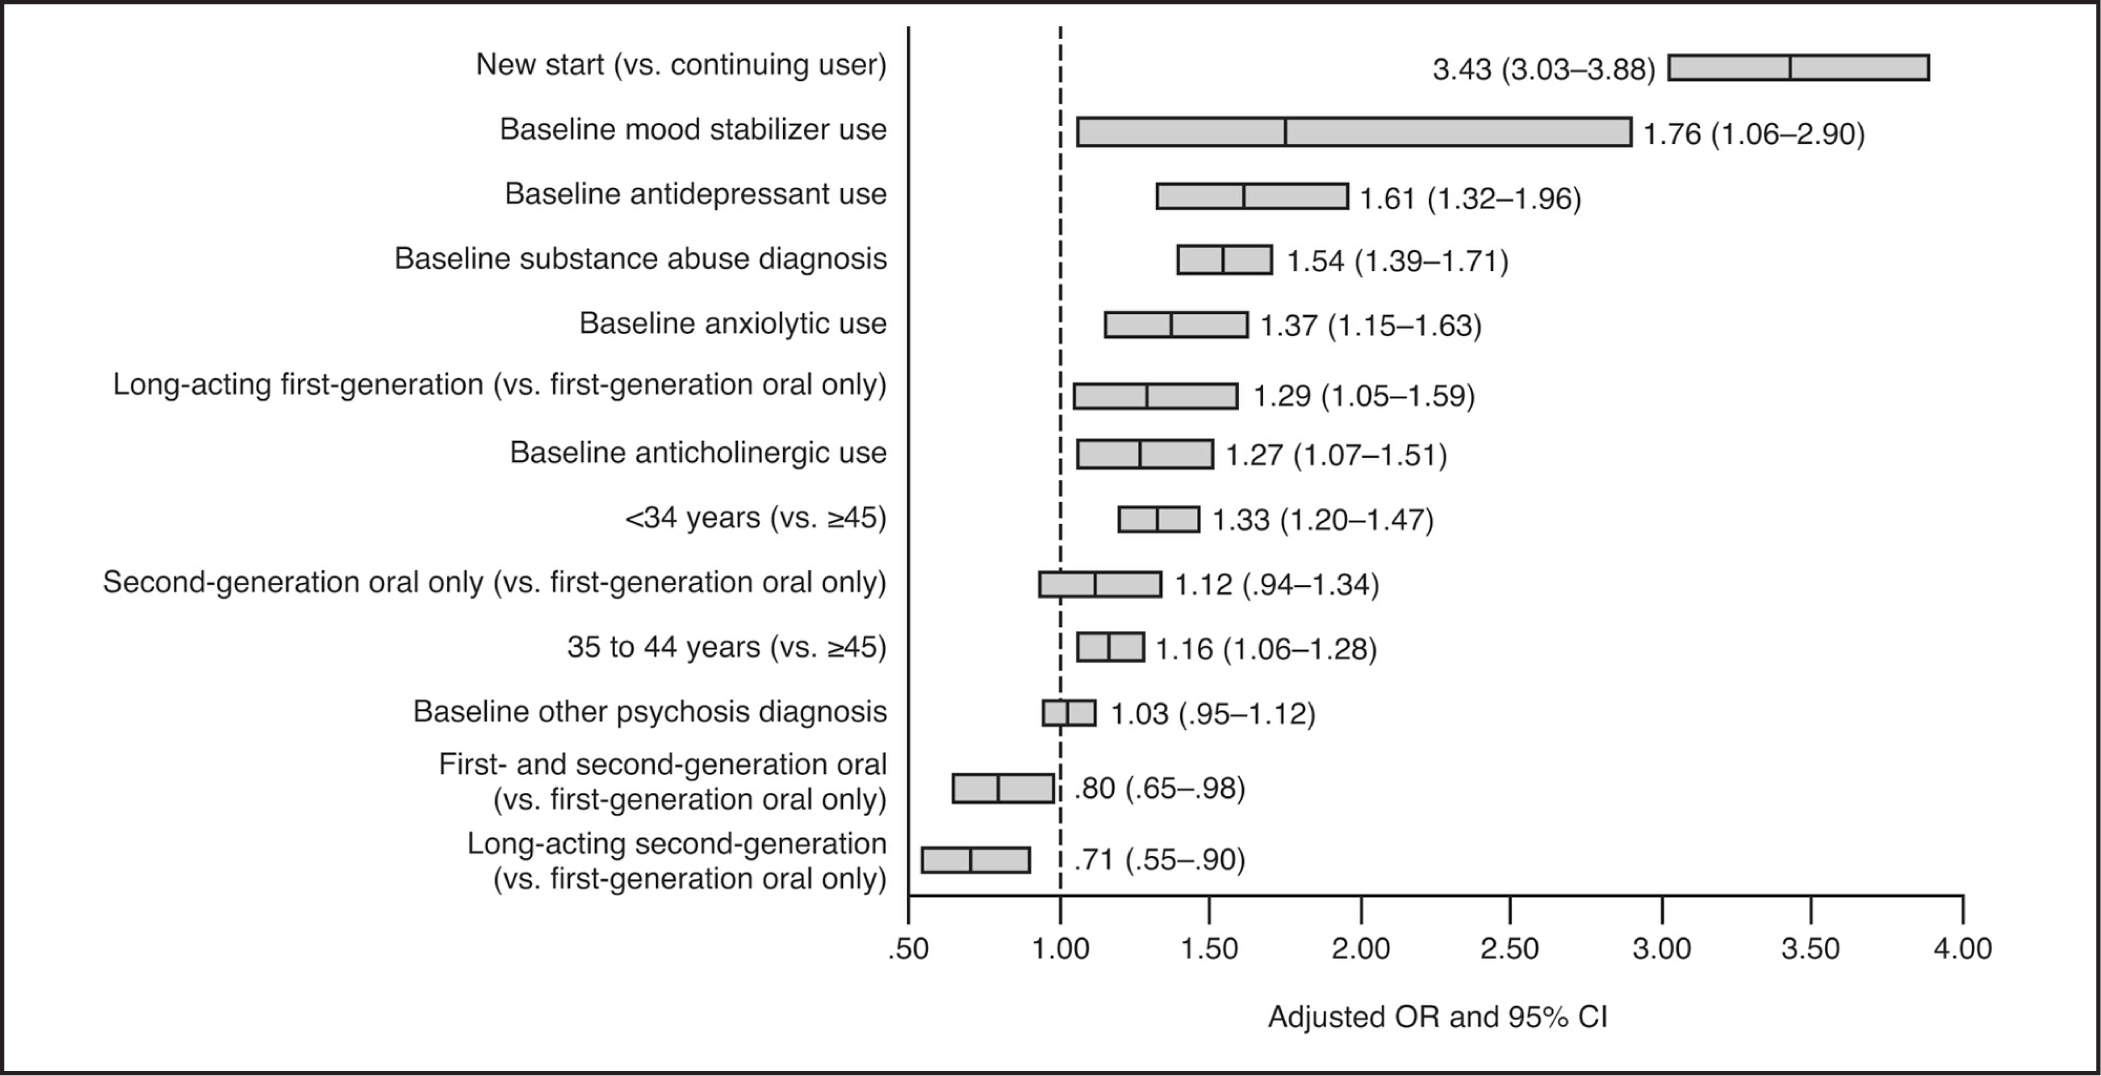 "Predictors of nonadherence in patients with schizophrenia treated with antipsychotic medications. Nonadherence was defined as a medication possession ratio < 0.8. Note. OR = odds ratio; CI = confidence interval.From ""Medication Adherence and Hospitalization Among Patients With Schizophrenia Treated With Antipsychotics,"" by K. Lang et al., 2010, Psychiatric Services, 61, p. 1244. Reprinted with permission from Psychiatric Services (© 2010), American Psychiatric Association."